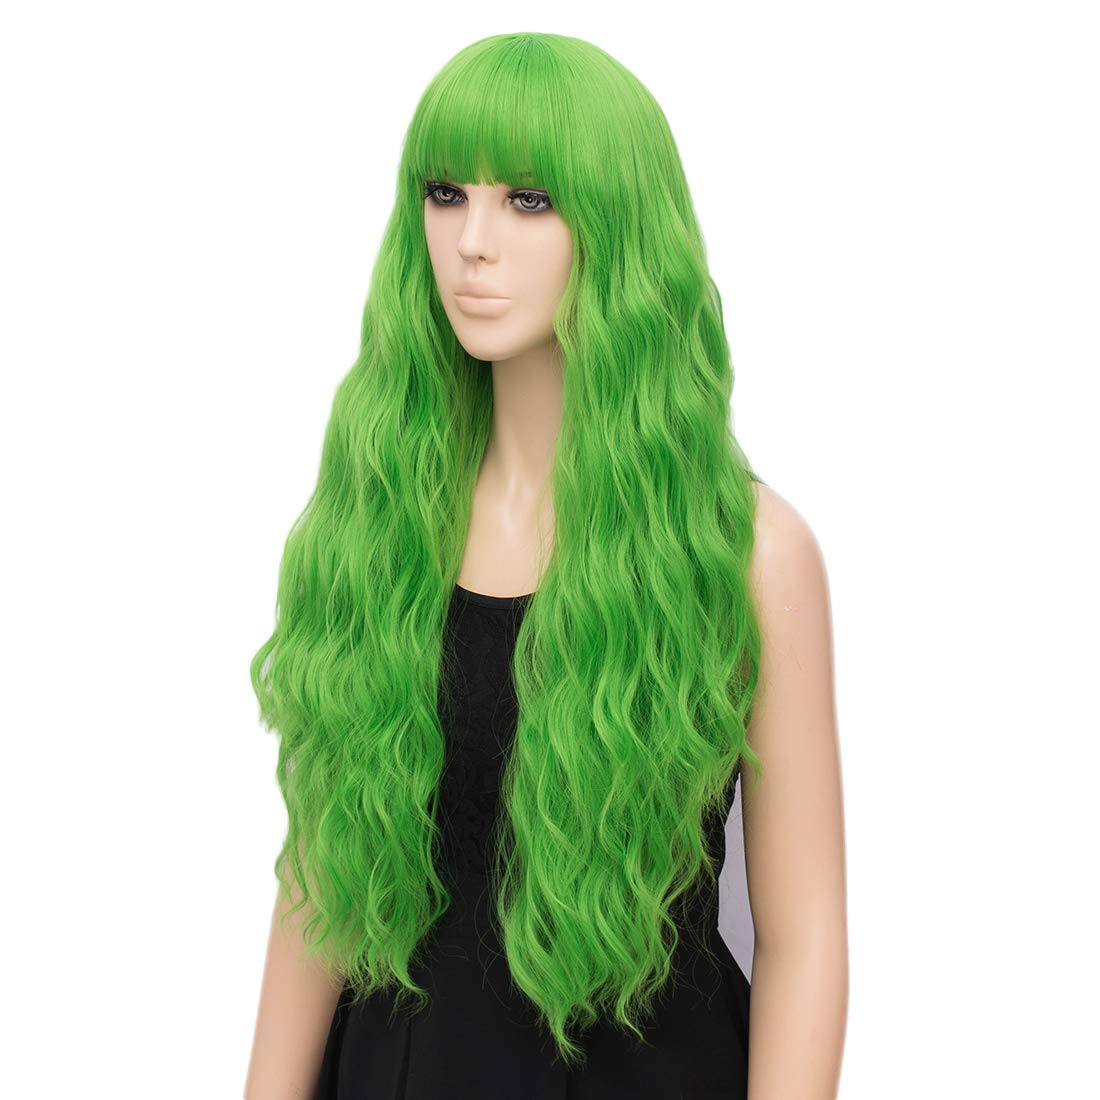 netgo Womens Pink Wig Long Fluffy Curly Wavy Hair Wigs for Girl Heat Friendly Synthetic Cosplay Party Wigs